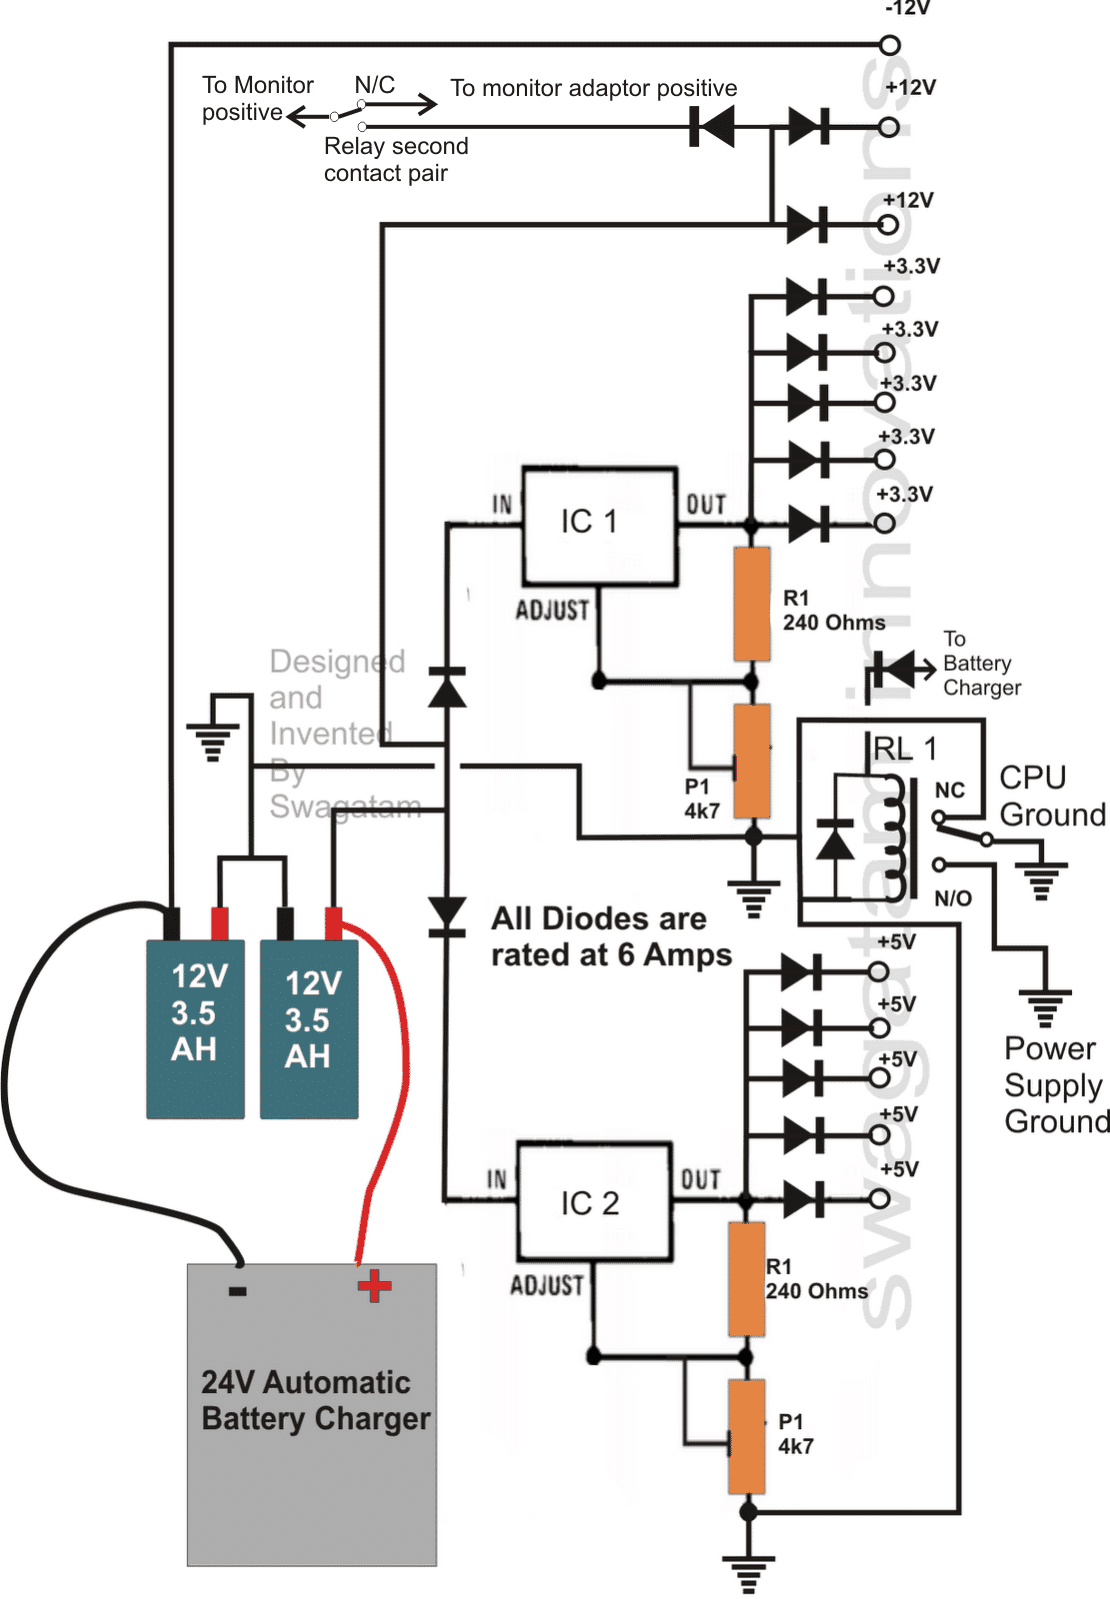 UPS WITH SINGLE LINE WIRING DIAGRAM - Auto Electrical Wiring